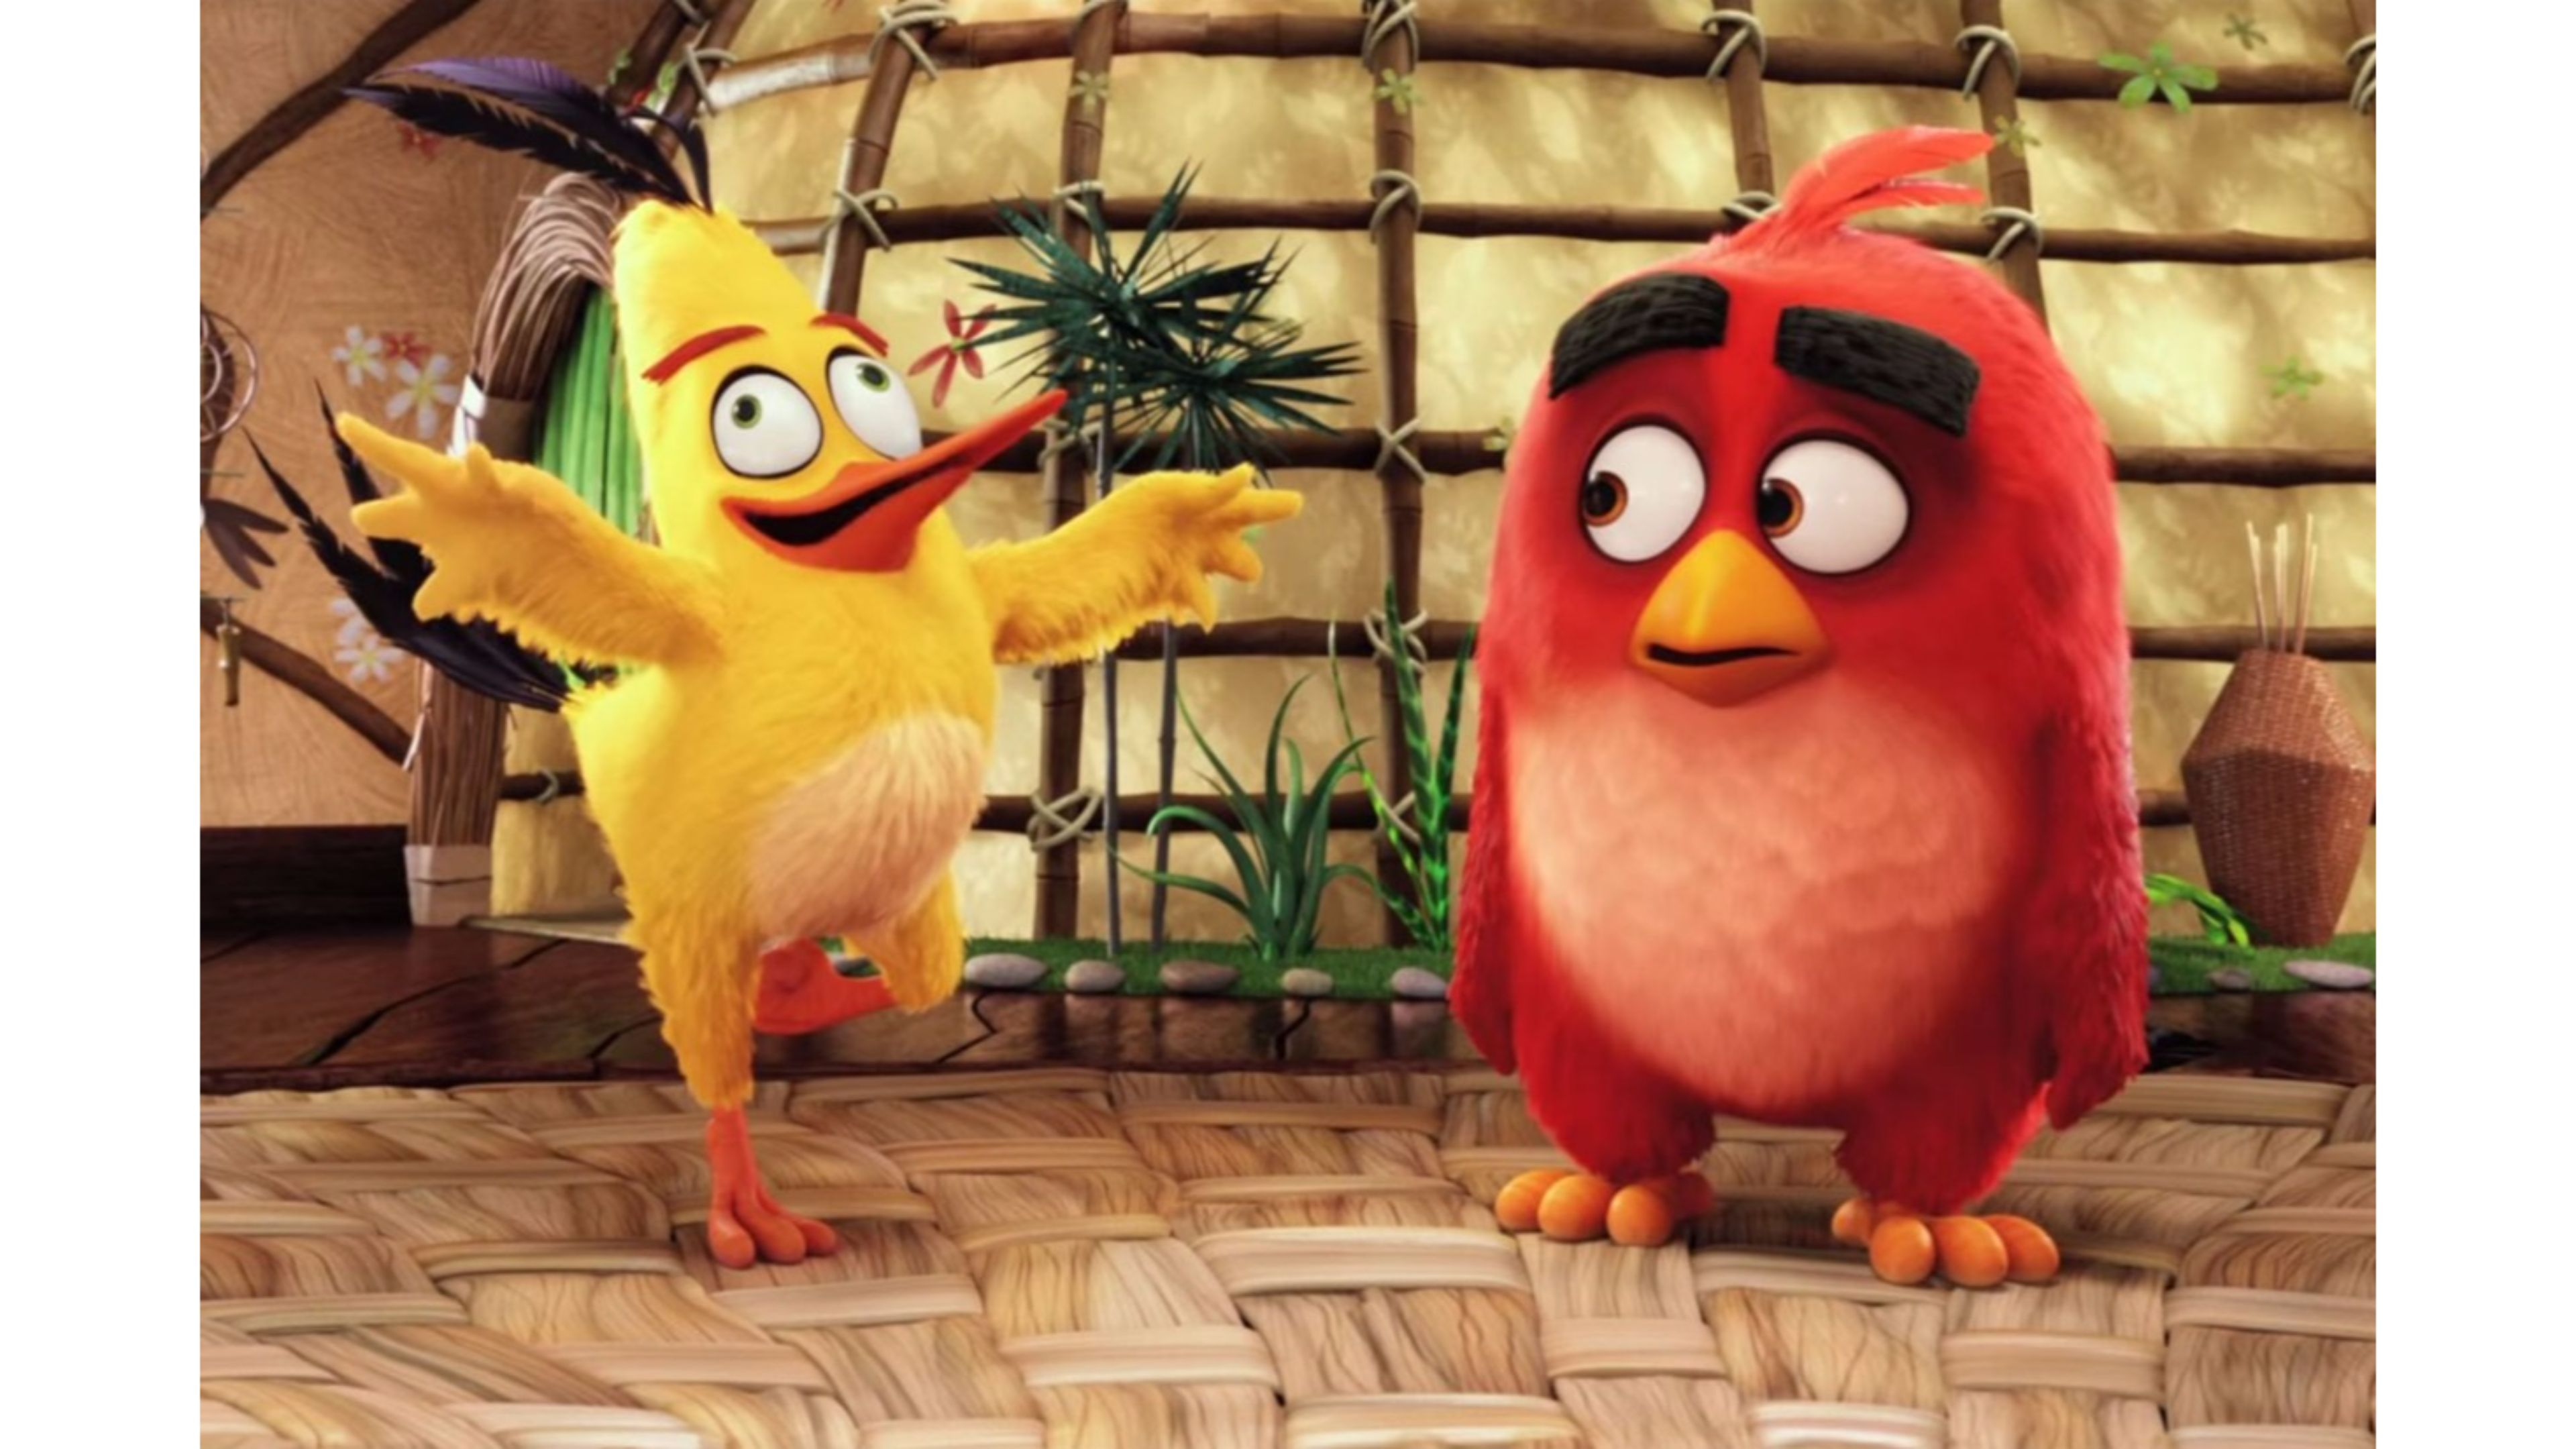 Funny Images Of Angry Birds 3840x2160 Wallpaper Teahub Io